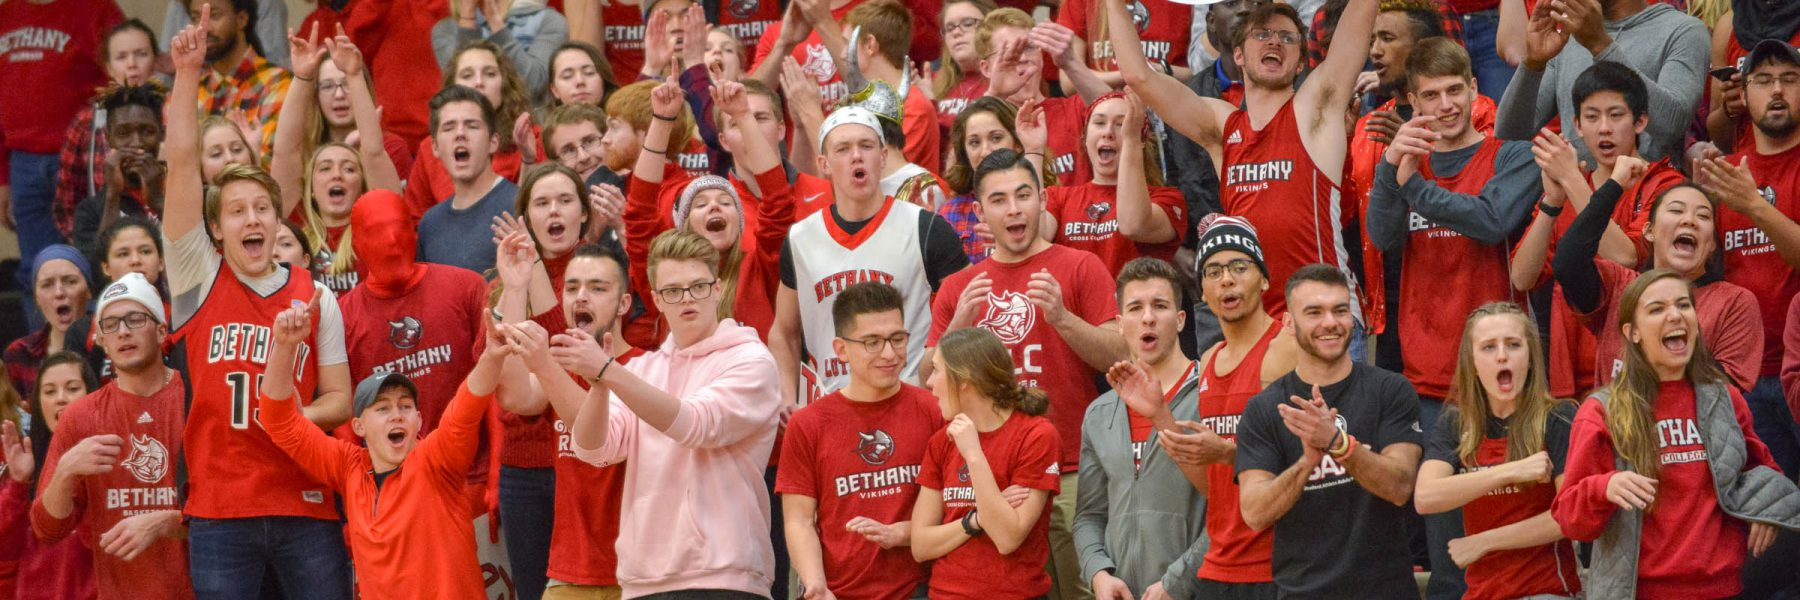 Fans at basketball game in North Gym of Sports and Fitness Center